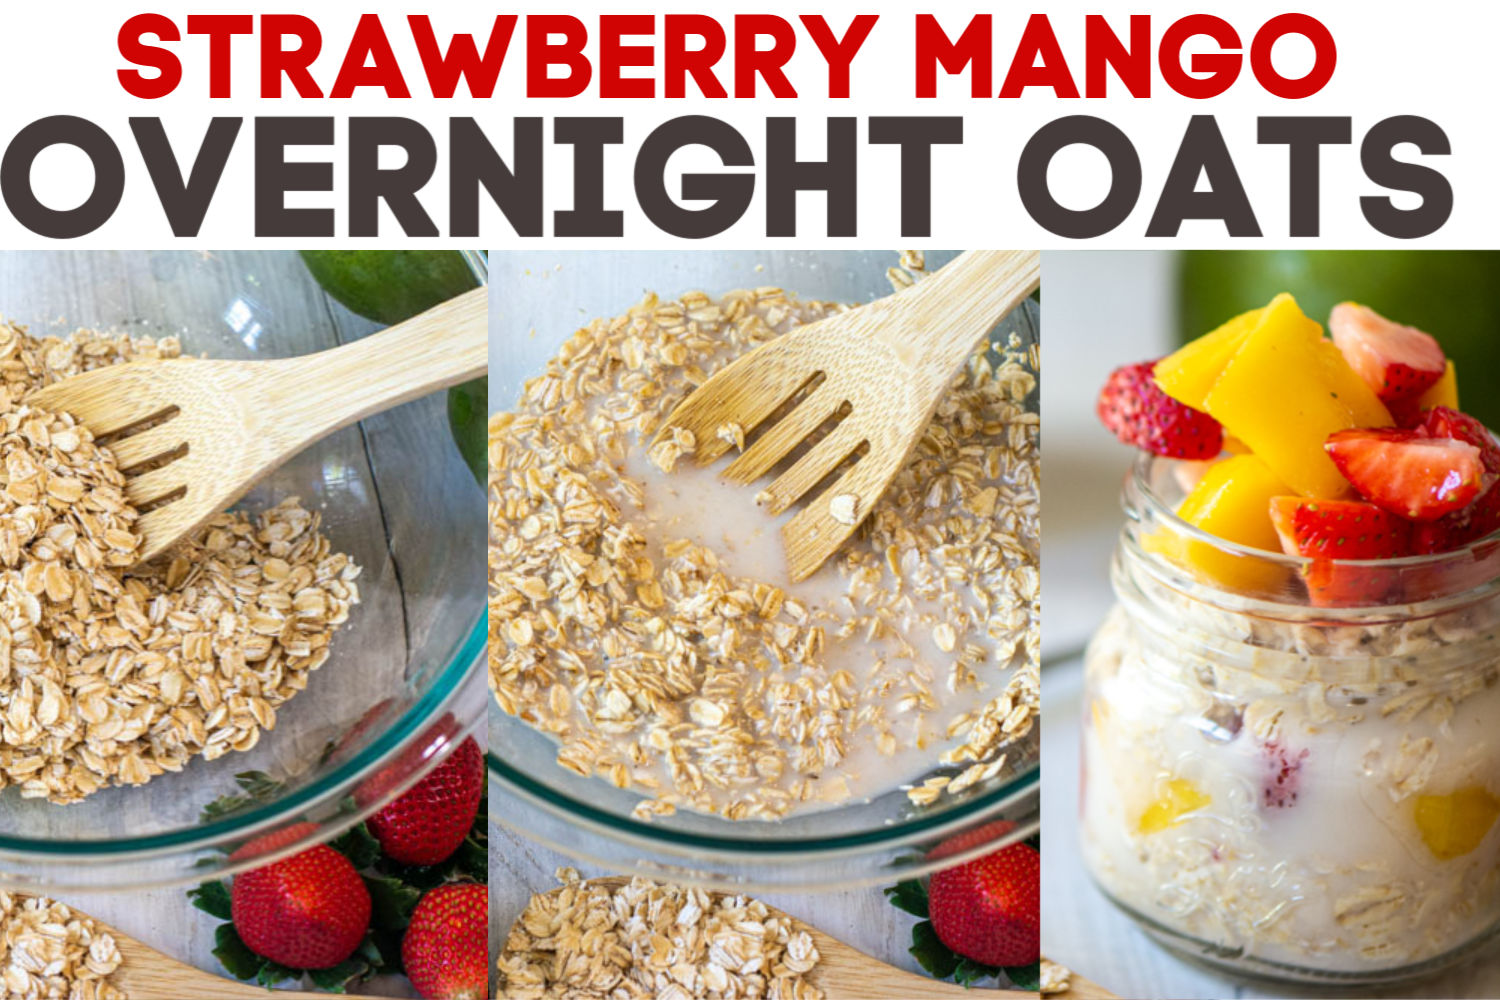 Three simple steps to make strawberry mango overnight oats